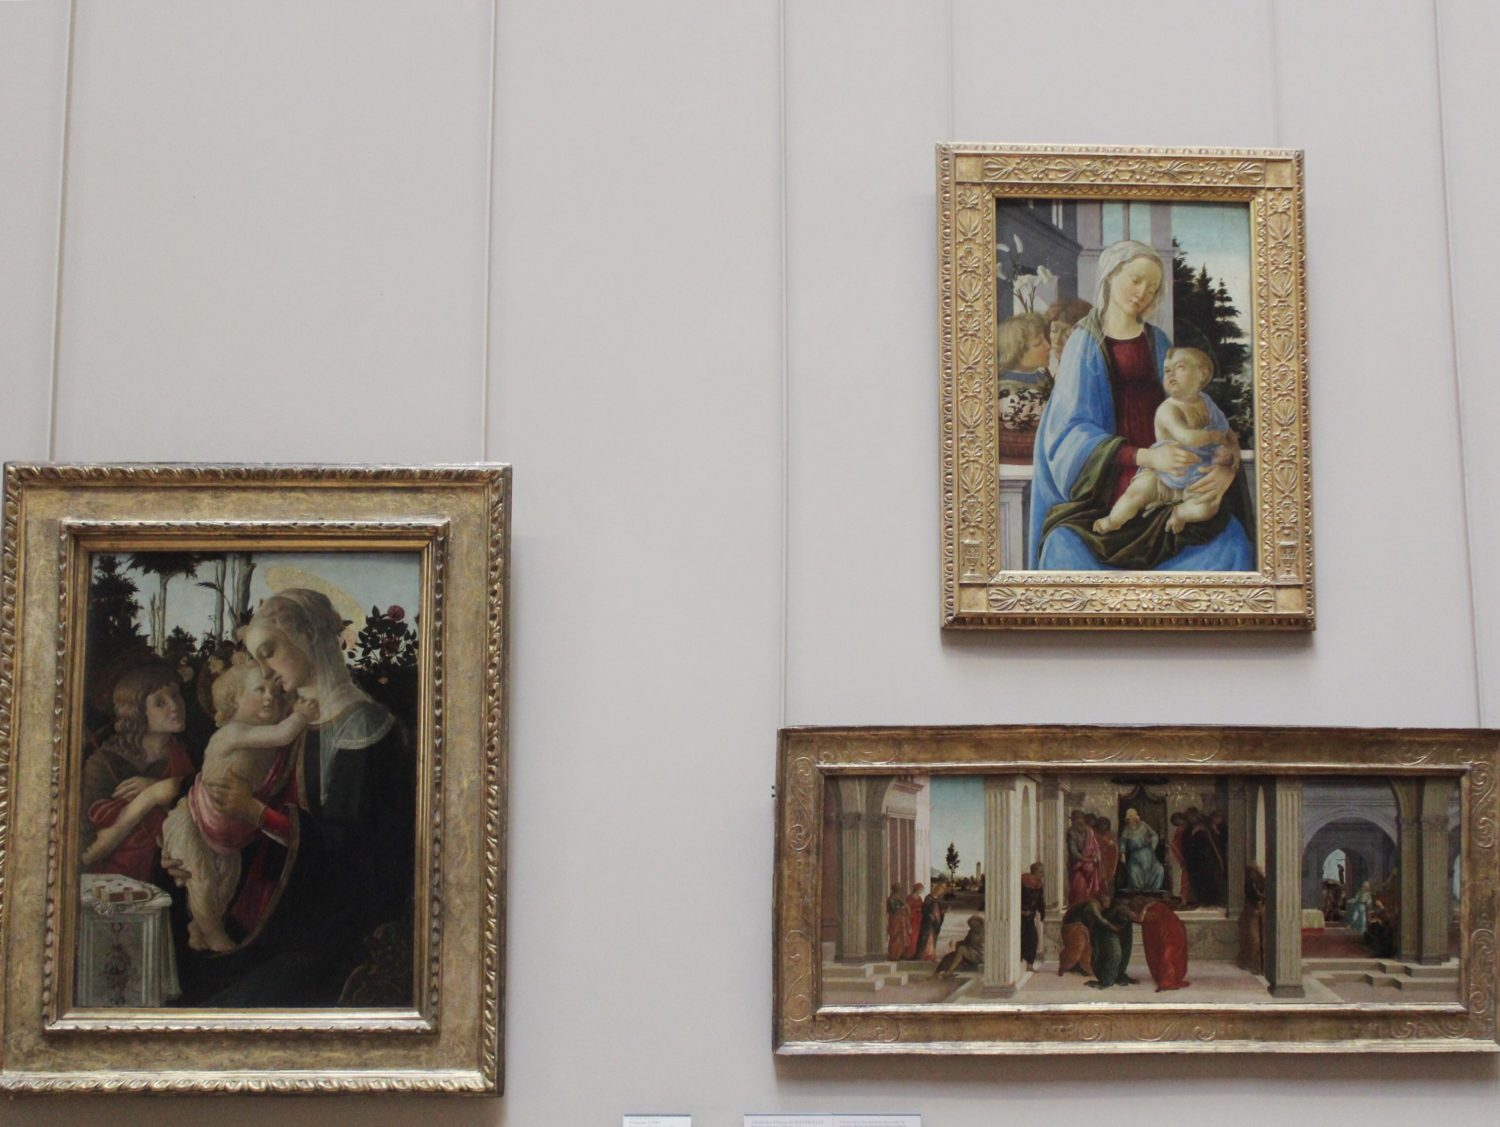 Paintings at The Louvre